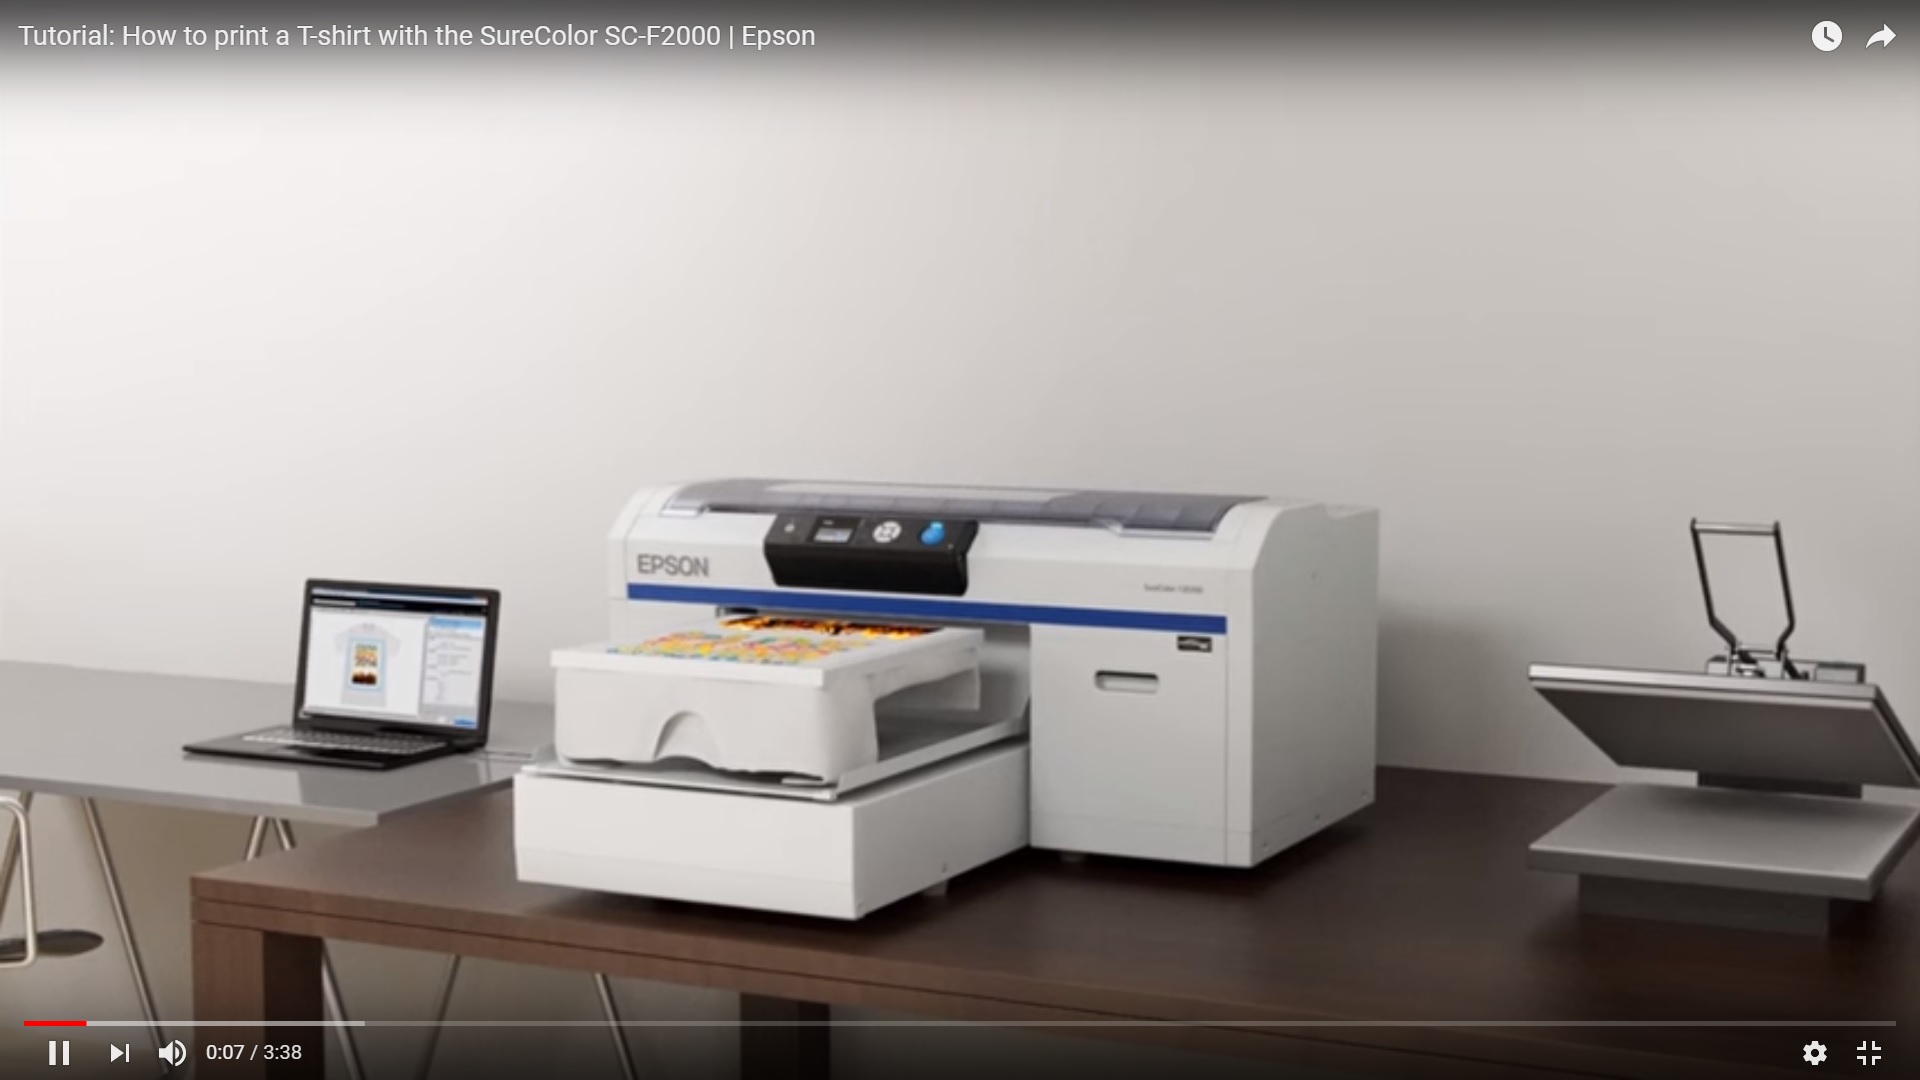 Epson T Shirt Printer Review - Nils Stucki Kieferorthopäde